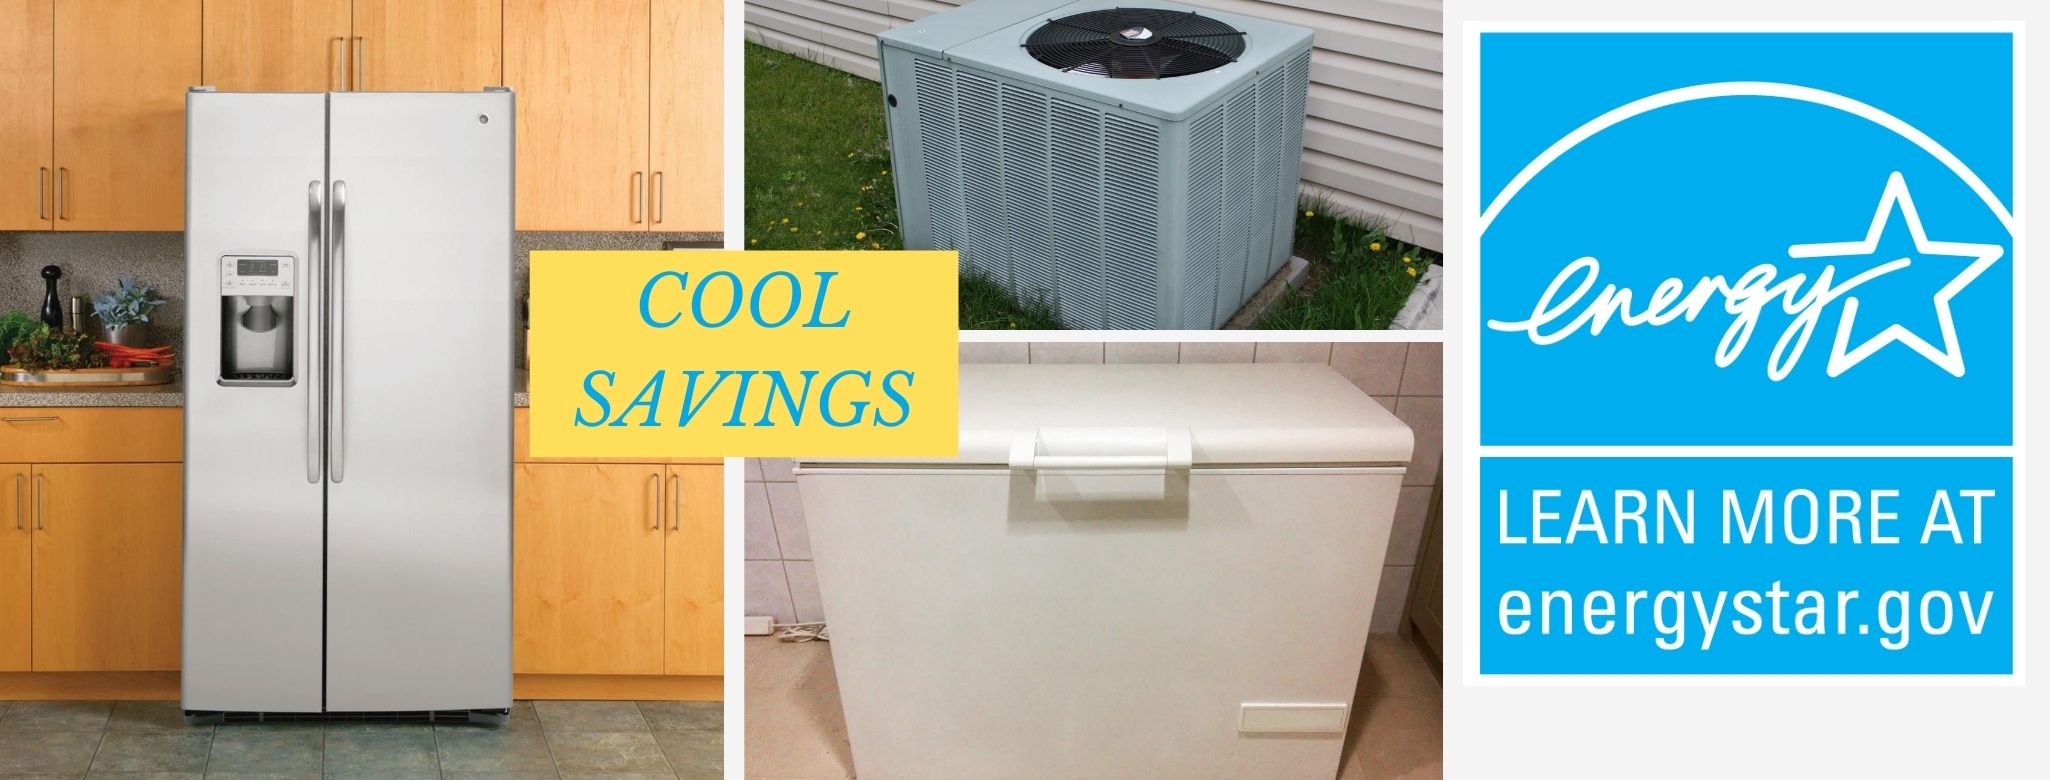 Energy Star Appliance Rebate Collage